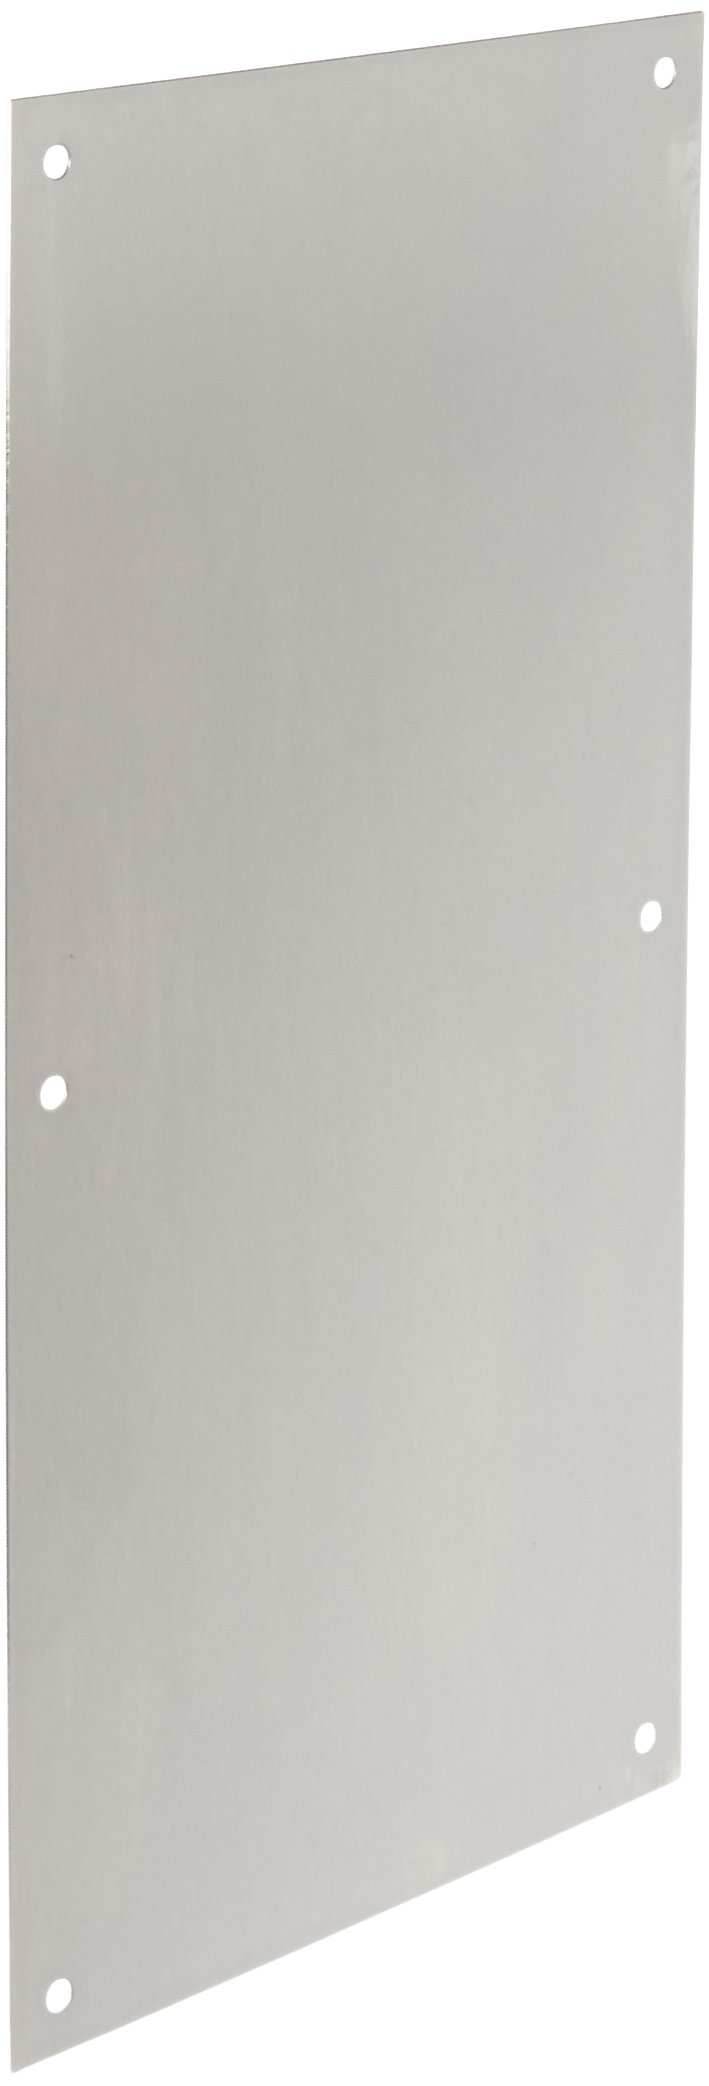 Rockwood 70F.32D Stainless Steel Standard Push Plate, Four Beveled Edges, 16'' Height x 8'' Width x 0.050'' Thick, Satin Finish